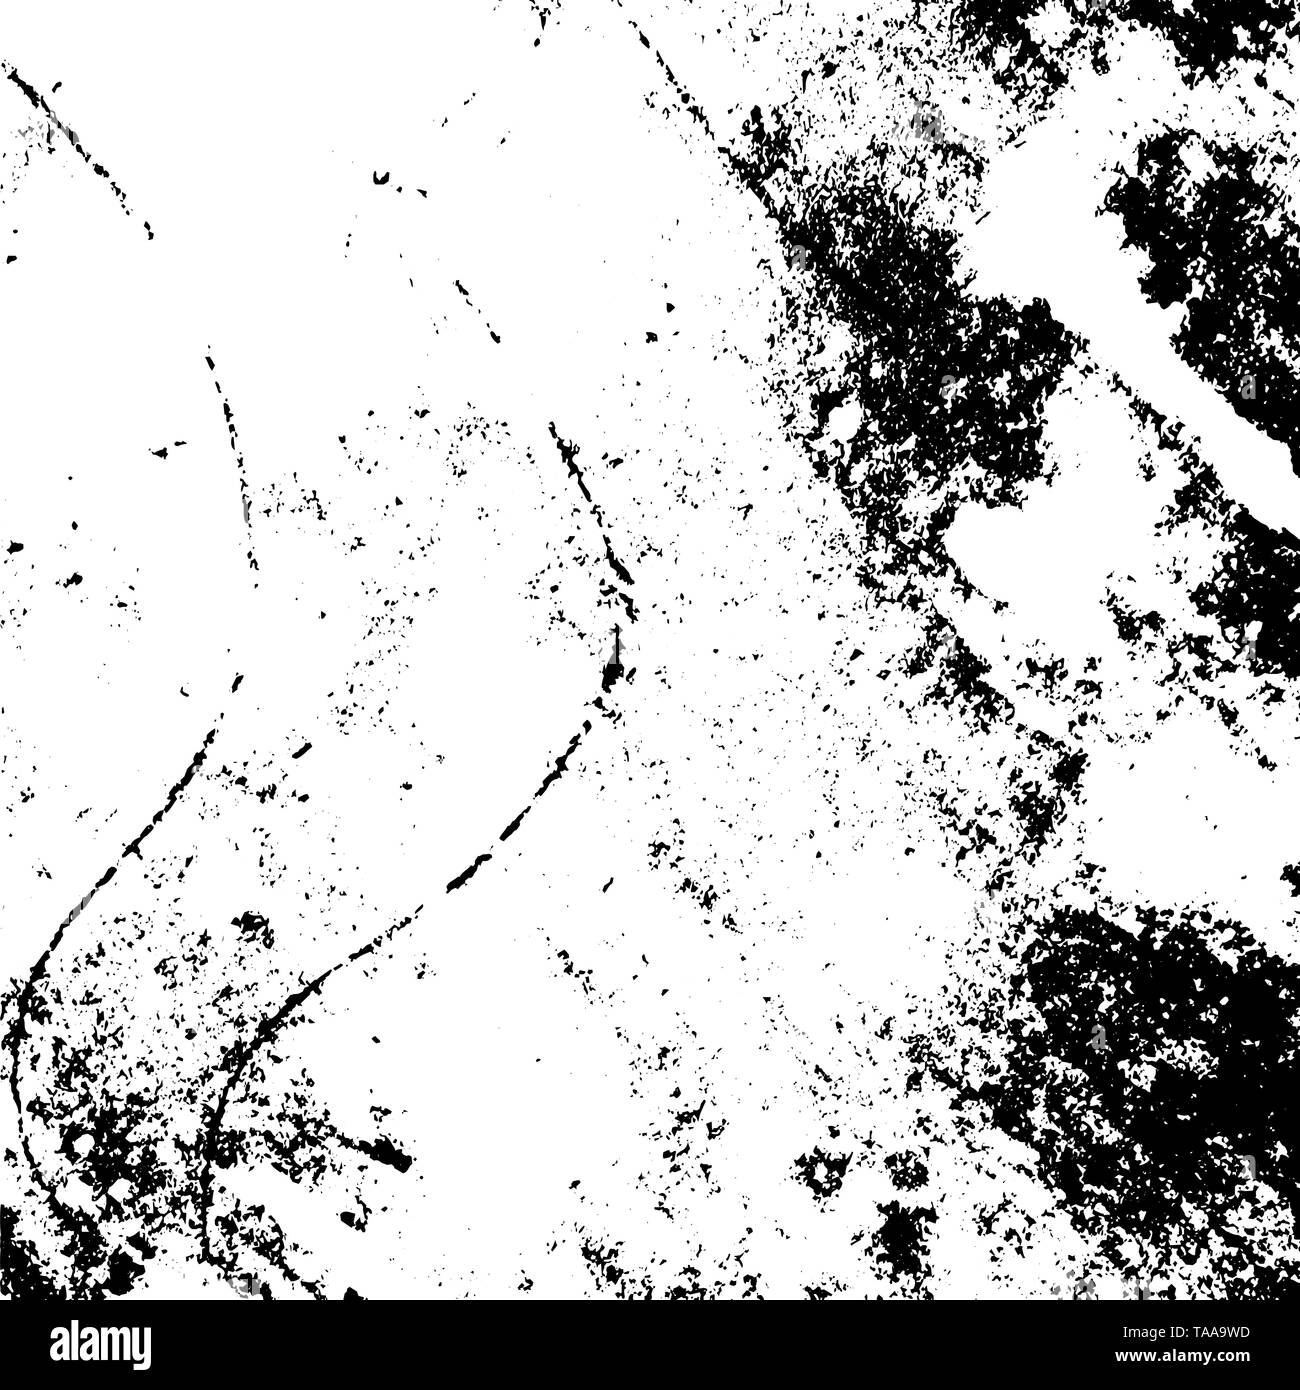 Dirty powder rough empty cover template. Distressed spray grainy overlay texture. Grunge dust messy background. Aged splatter crumb wall backdrop. Wea - Stock Image